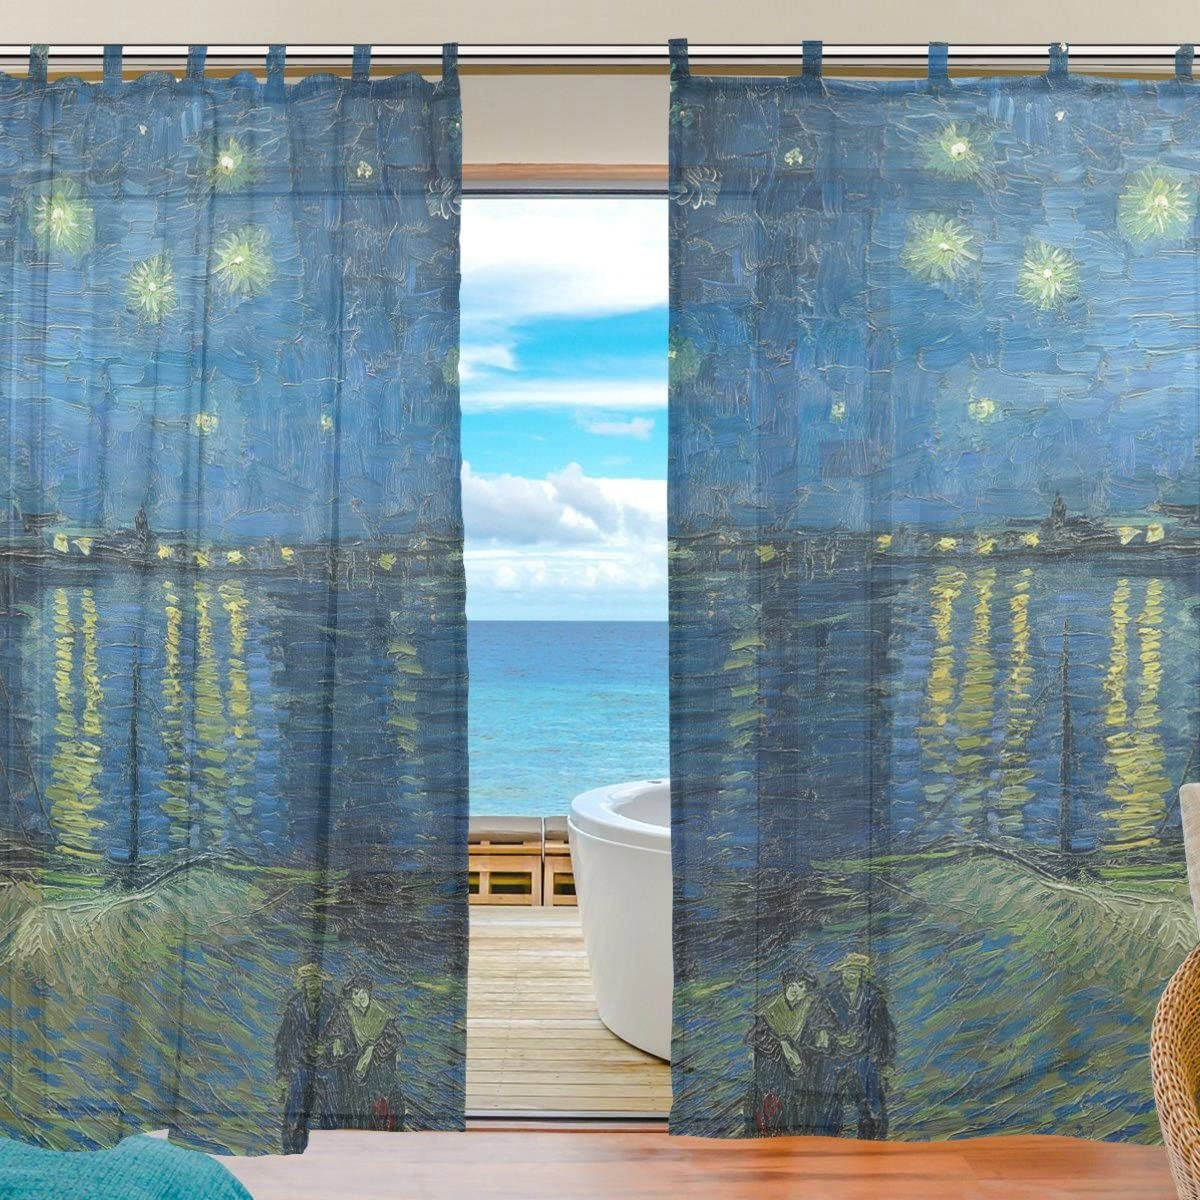 INGBAGS Bedroom Decor Living Room Decorations Van Gogh Star Pattern Print Tulle Polyester Door Window Gauze Sheer Curtain Drape Two Panels Set 55×78 inch,Set of 2